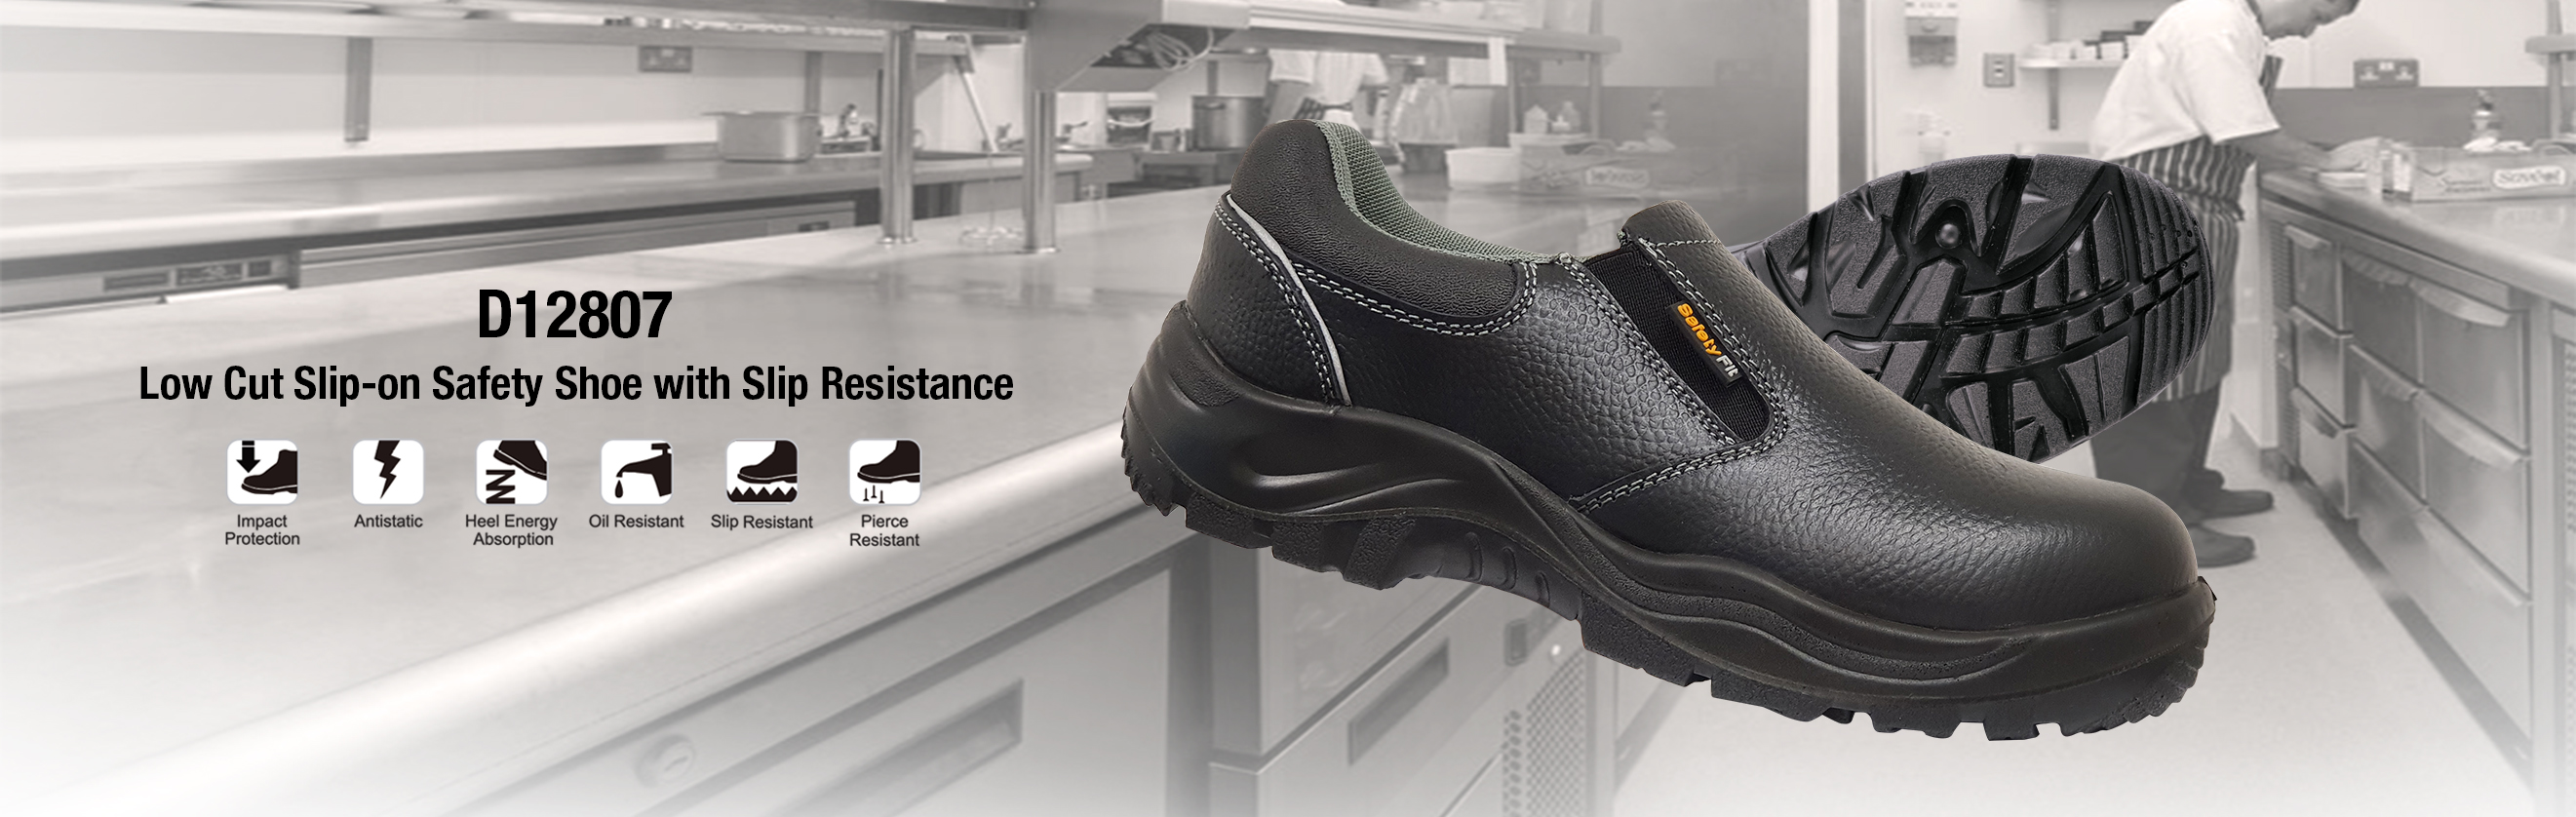 Where to buy safety shoes Singapore low cut slip-on with slip resistance